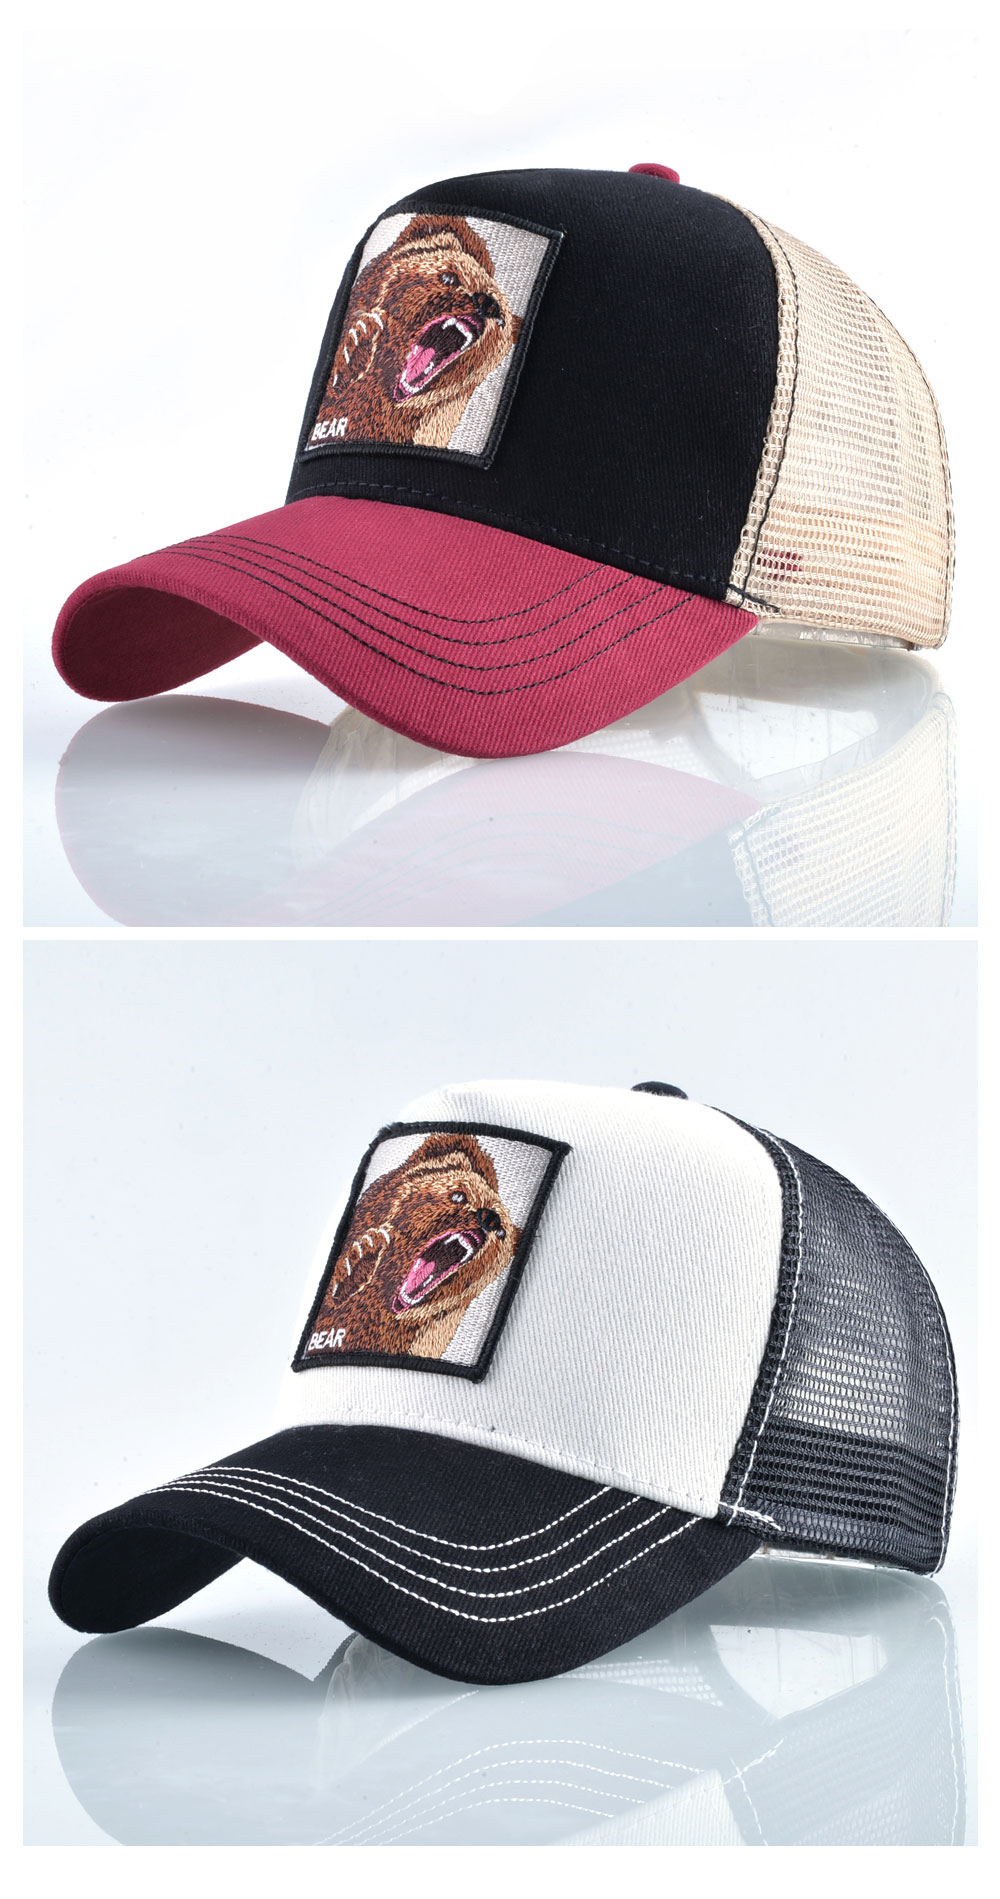 Embroidered Mesh Hats